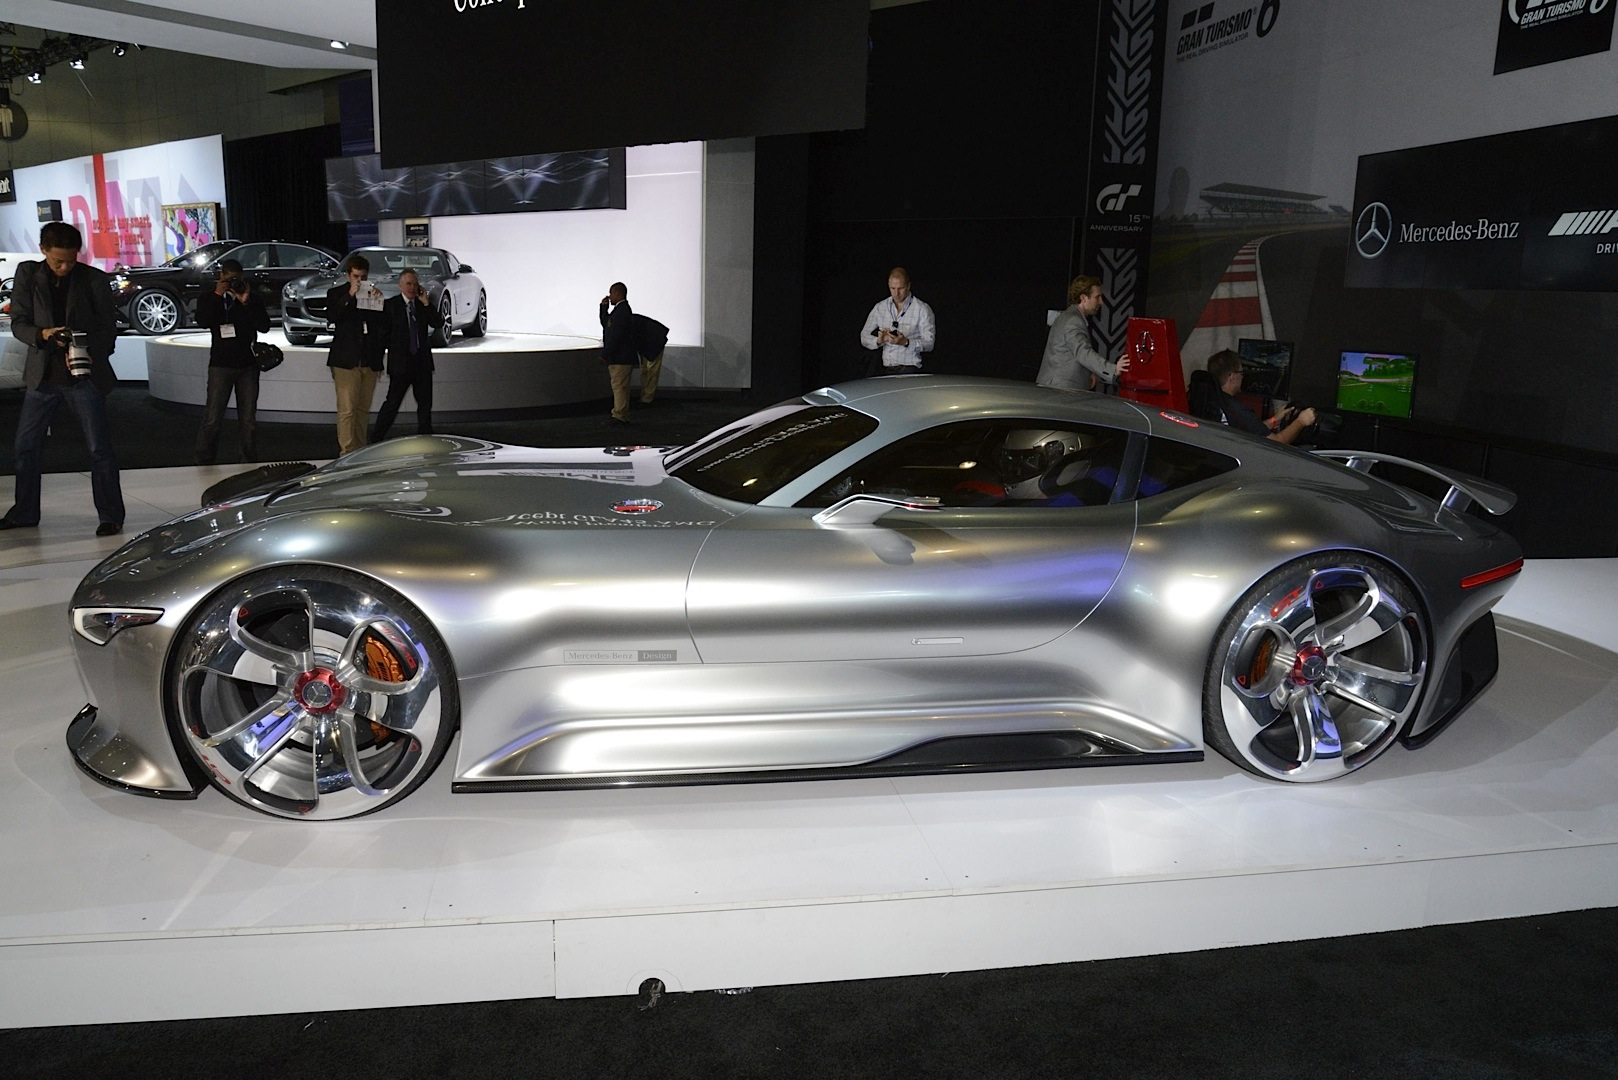 mercedes benz amg vision gran turismo looks badass live as well autoevolution. Black Bedroom Furniture Sets. Home Design Ideas